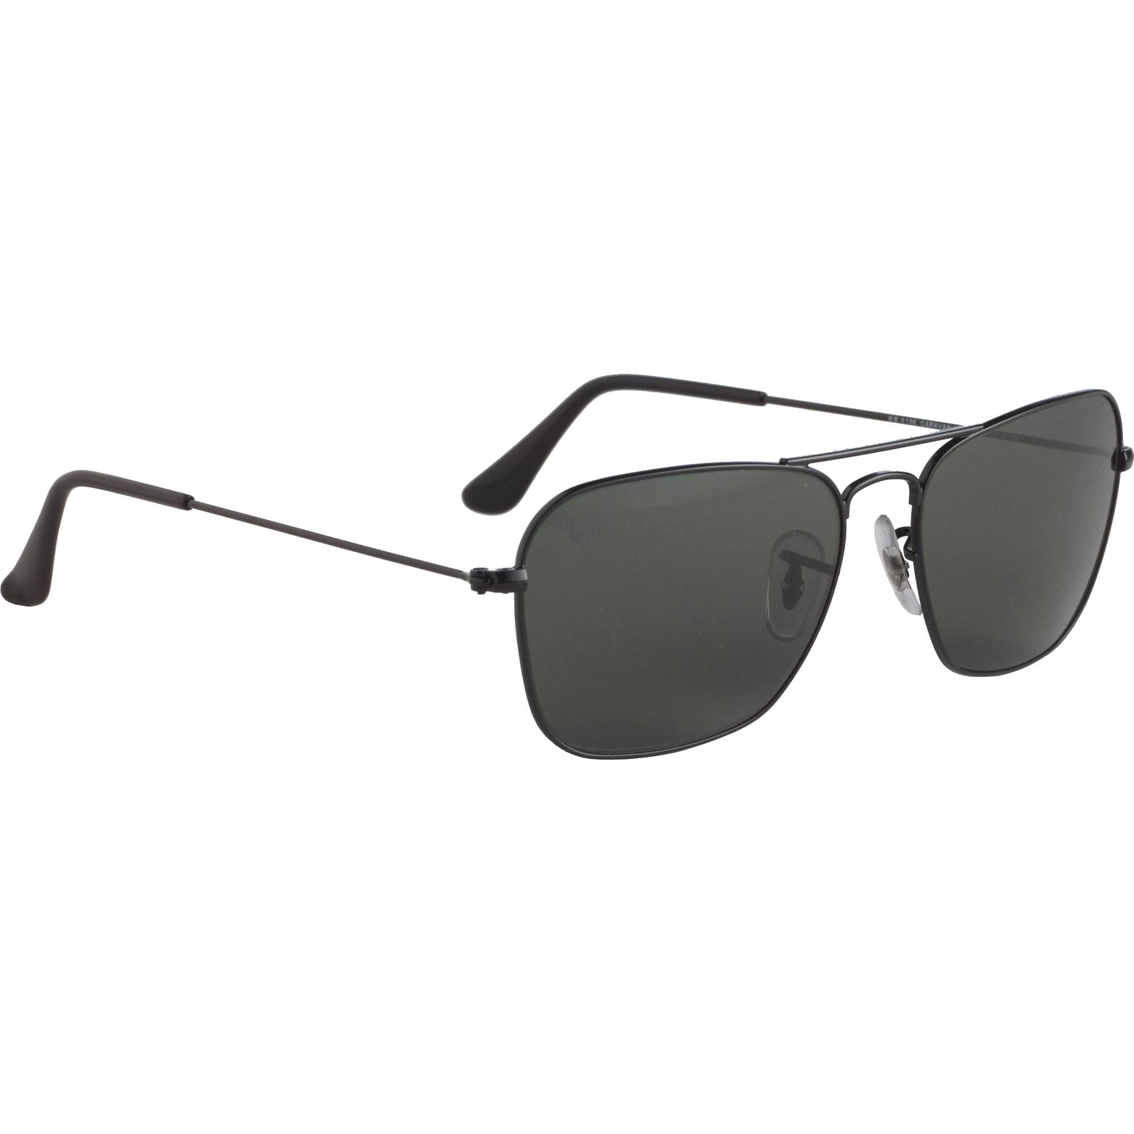 854a394c6a99 Ray-ban Caravan Sunglasses Rb3136 | Men's Sunglasses | Handbags ...